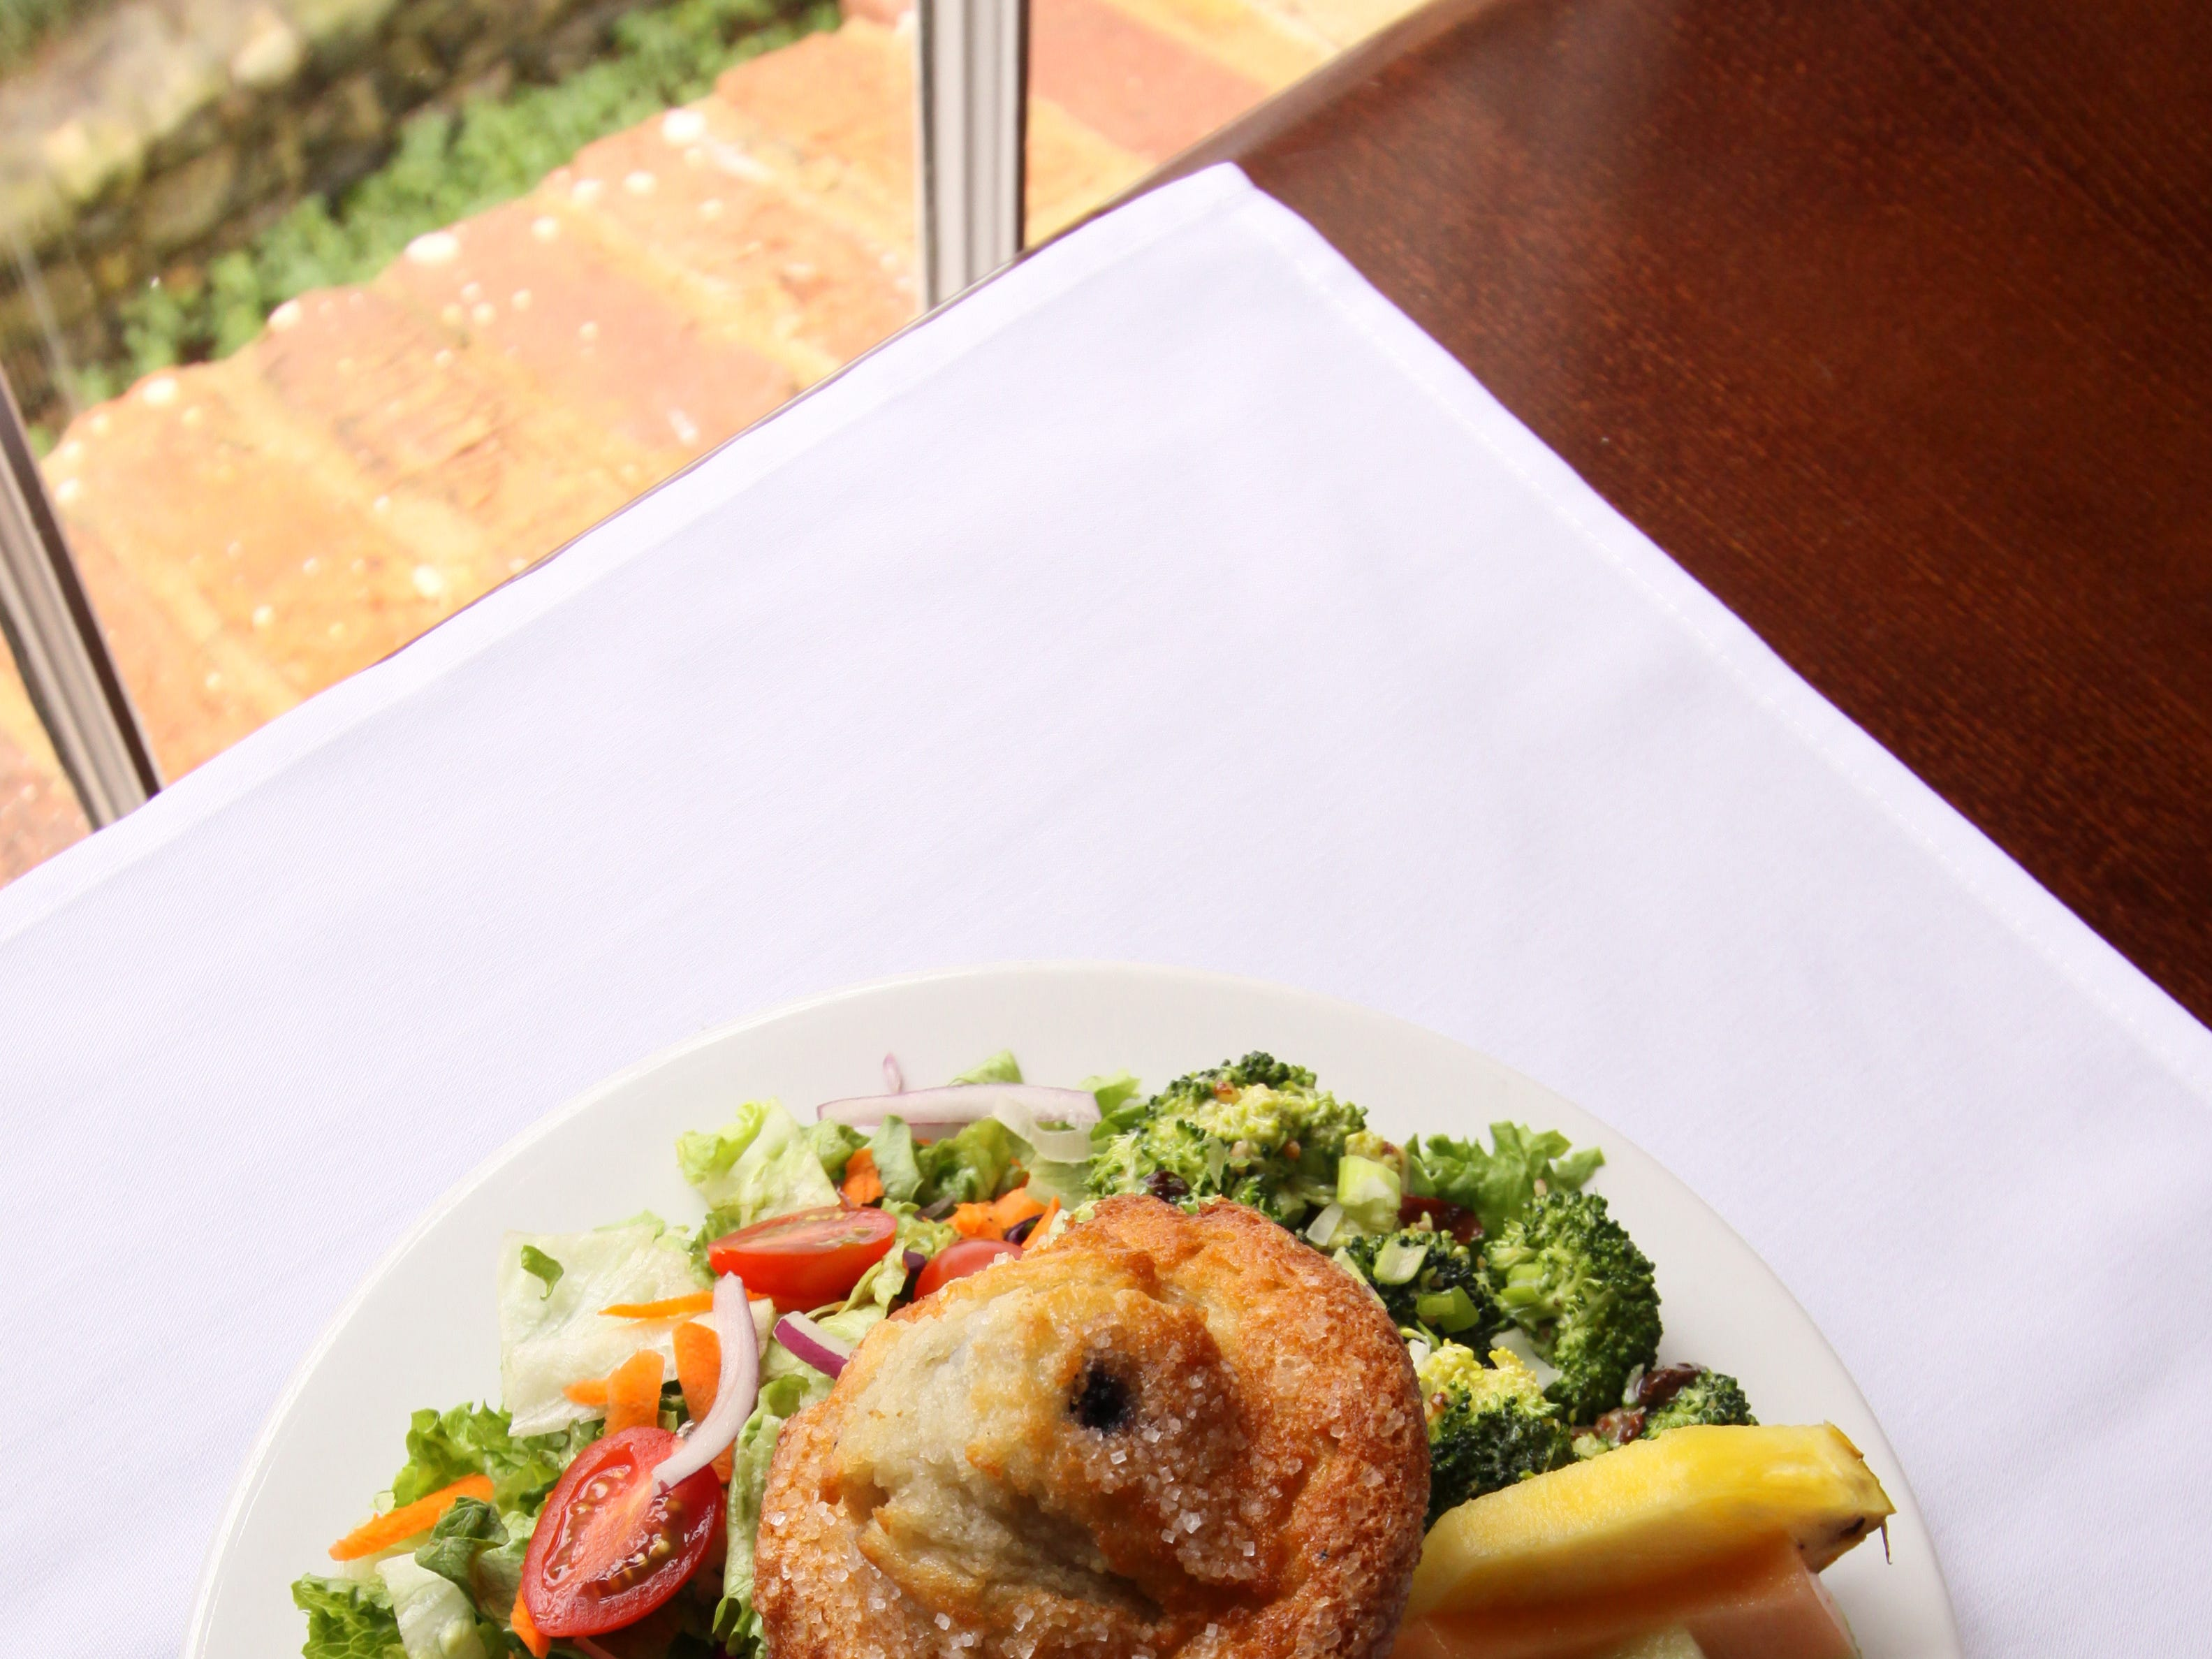 Broccoli salad and blueberry muffin from Mary's at Falls Cottage.